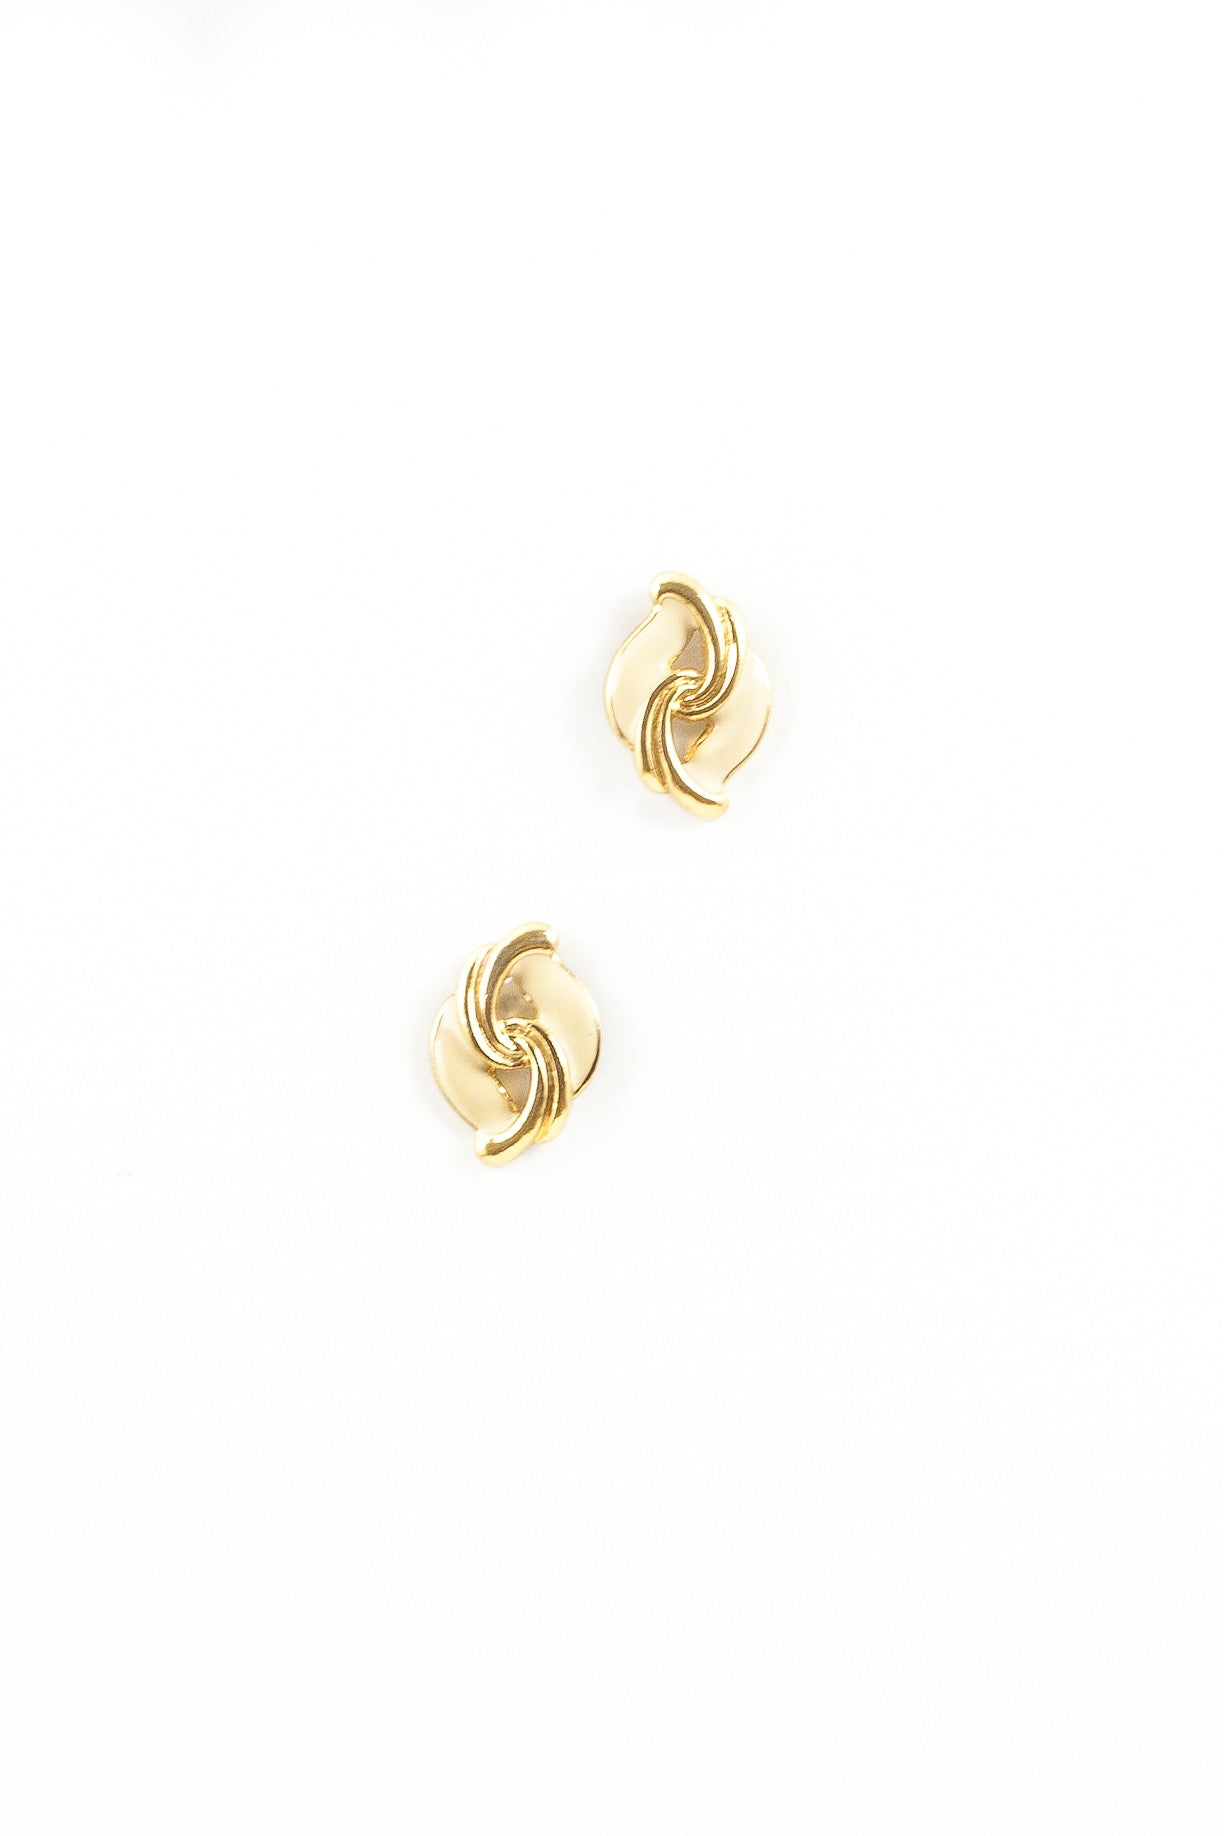 70's__Vintage__Swirl Earrings